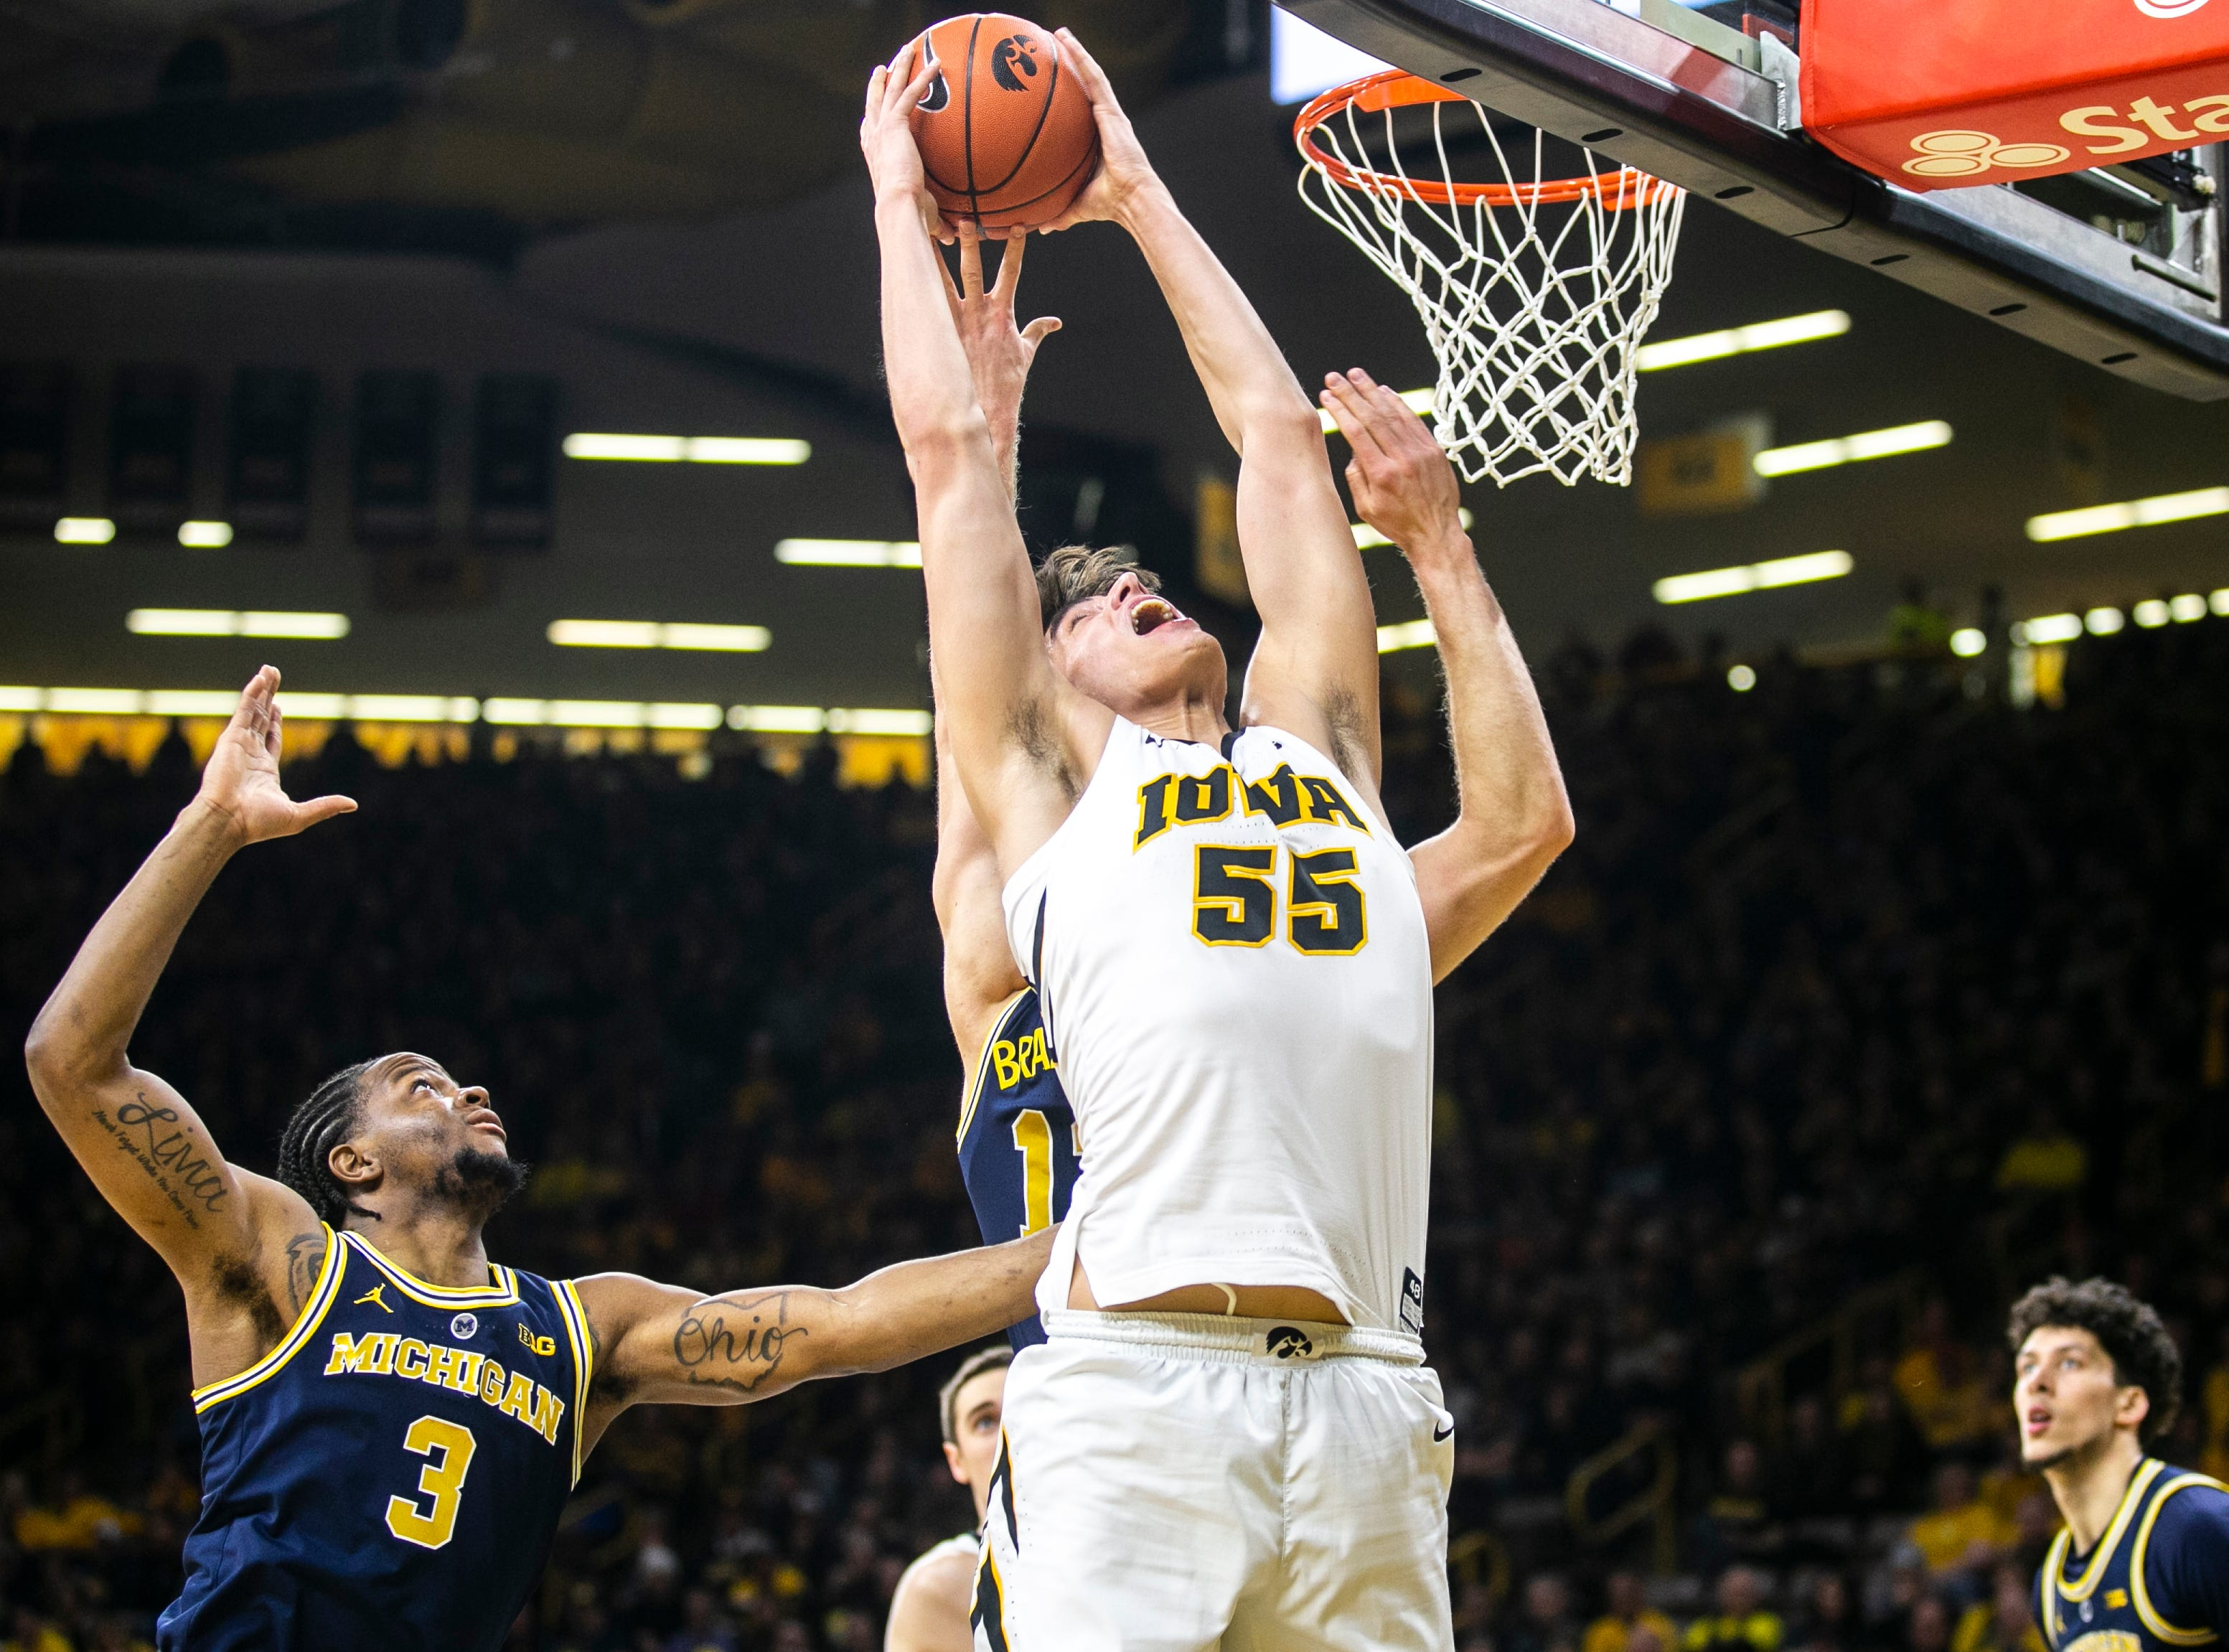 Iowa forward Luka Garza (55) during a NCAA Big Ten Conference men's basketball game on Friday, Feb. 1, 2019, at Carver-Hawkeye Arena in Iowa City, Iowa.